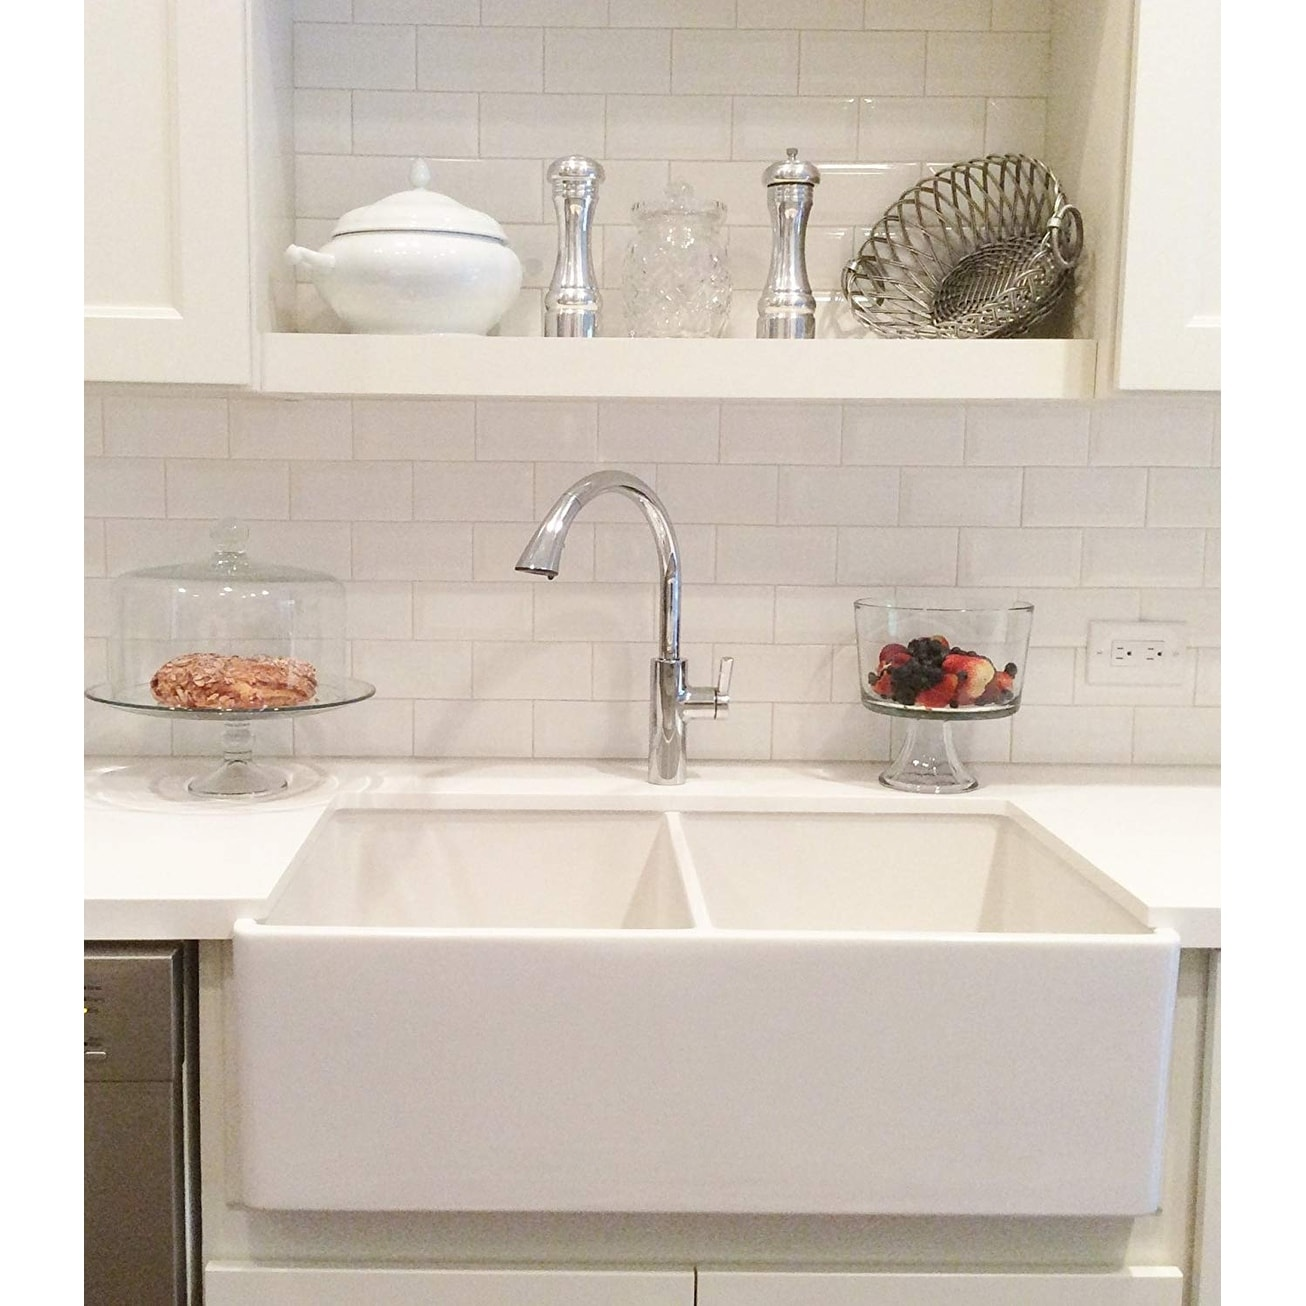 Double Bowl Farm Farmhouse A Front Fireclay Kitchen Sink 33 White Reversible Smooth Fluted Free Shipping Today 12995517